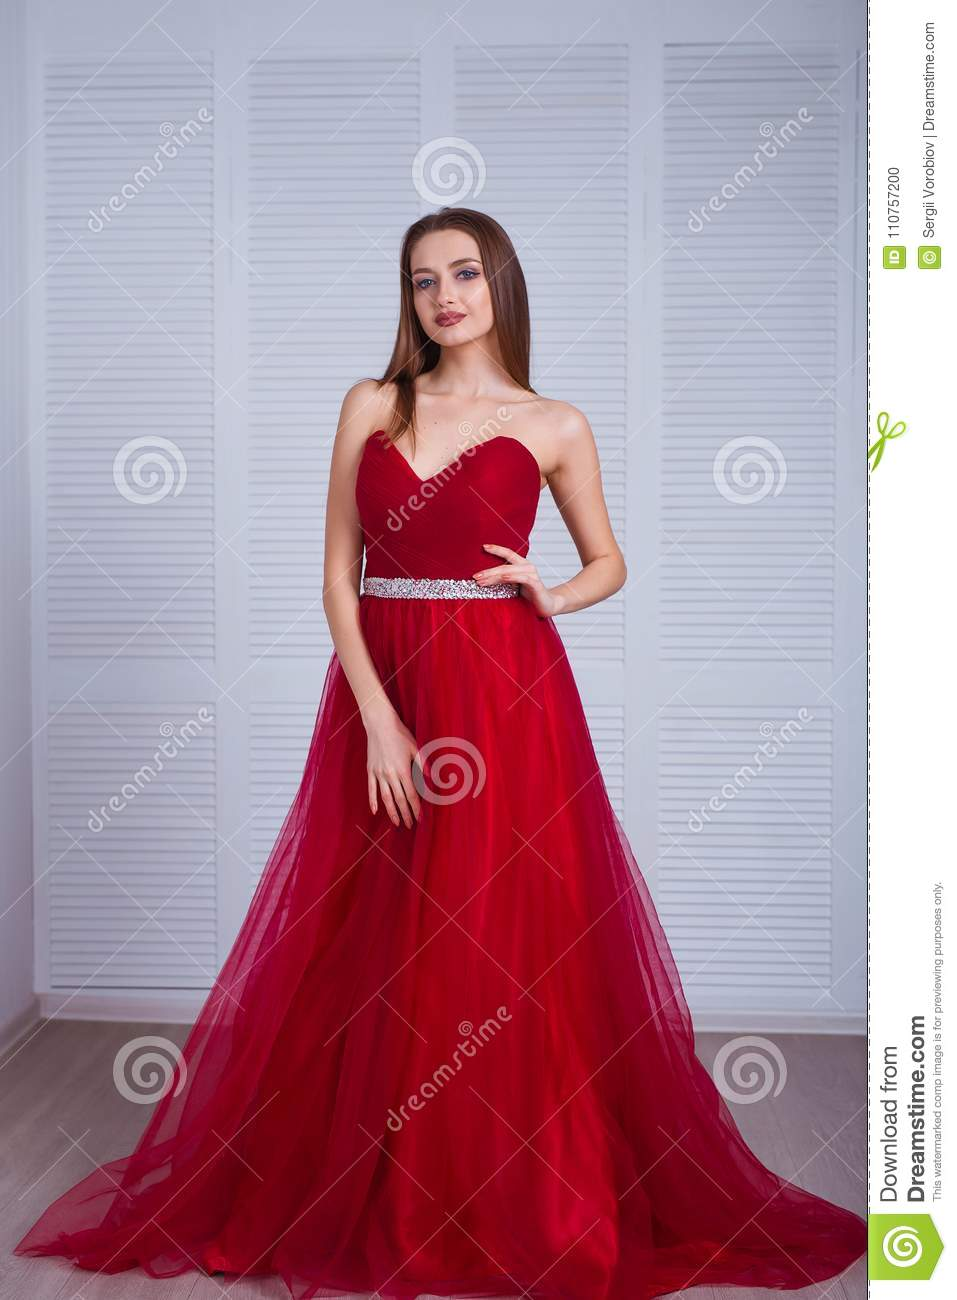 Seductive Red Dress